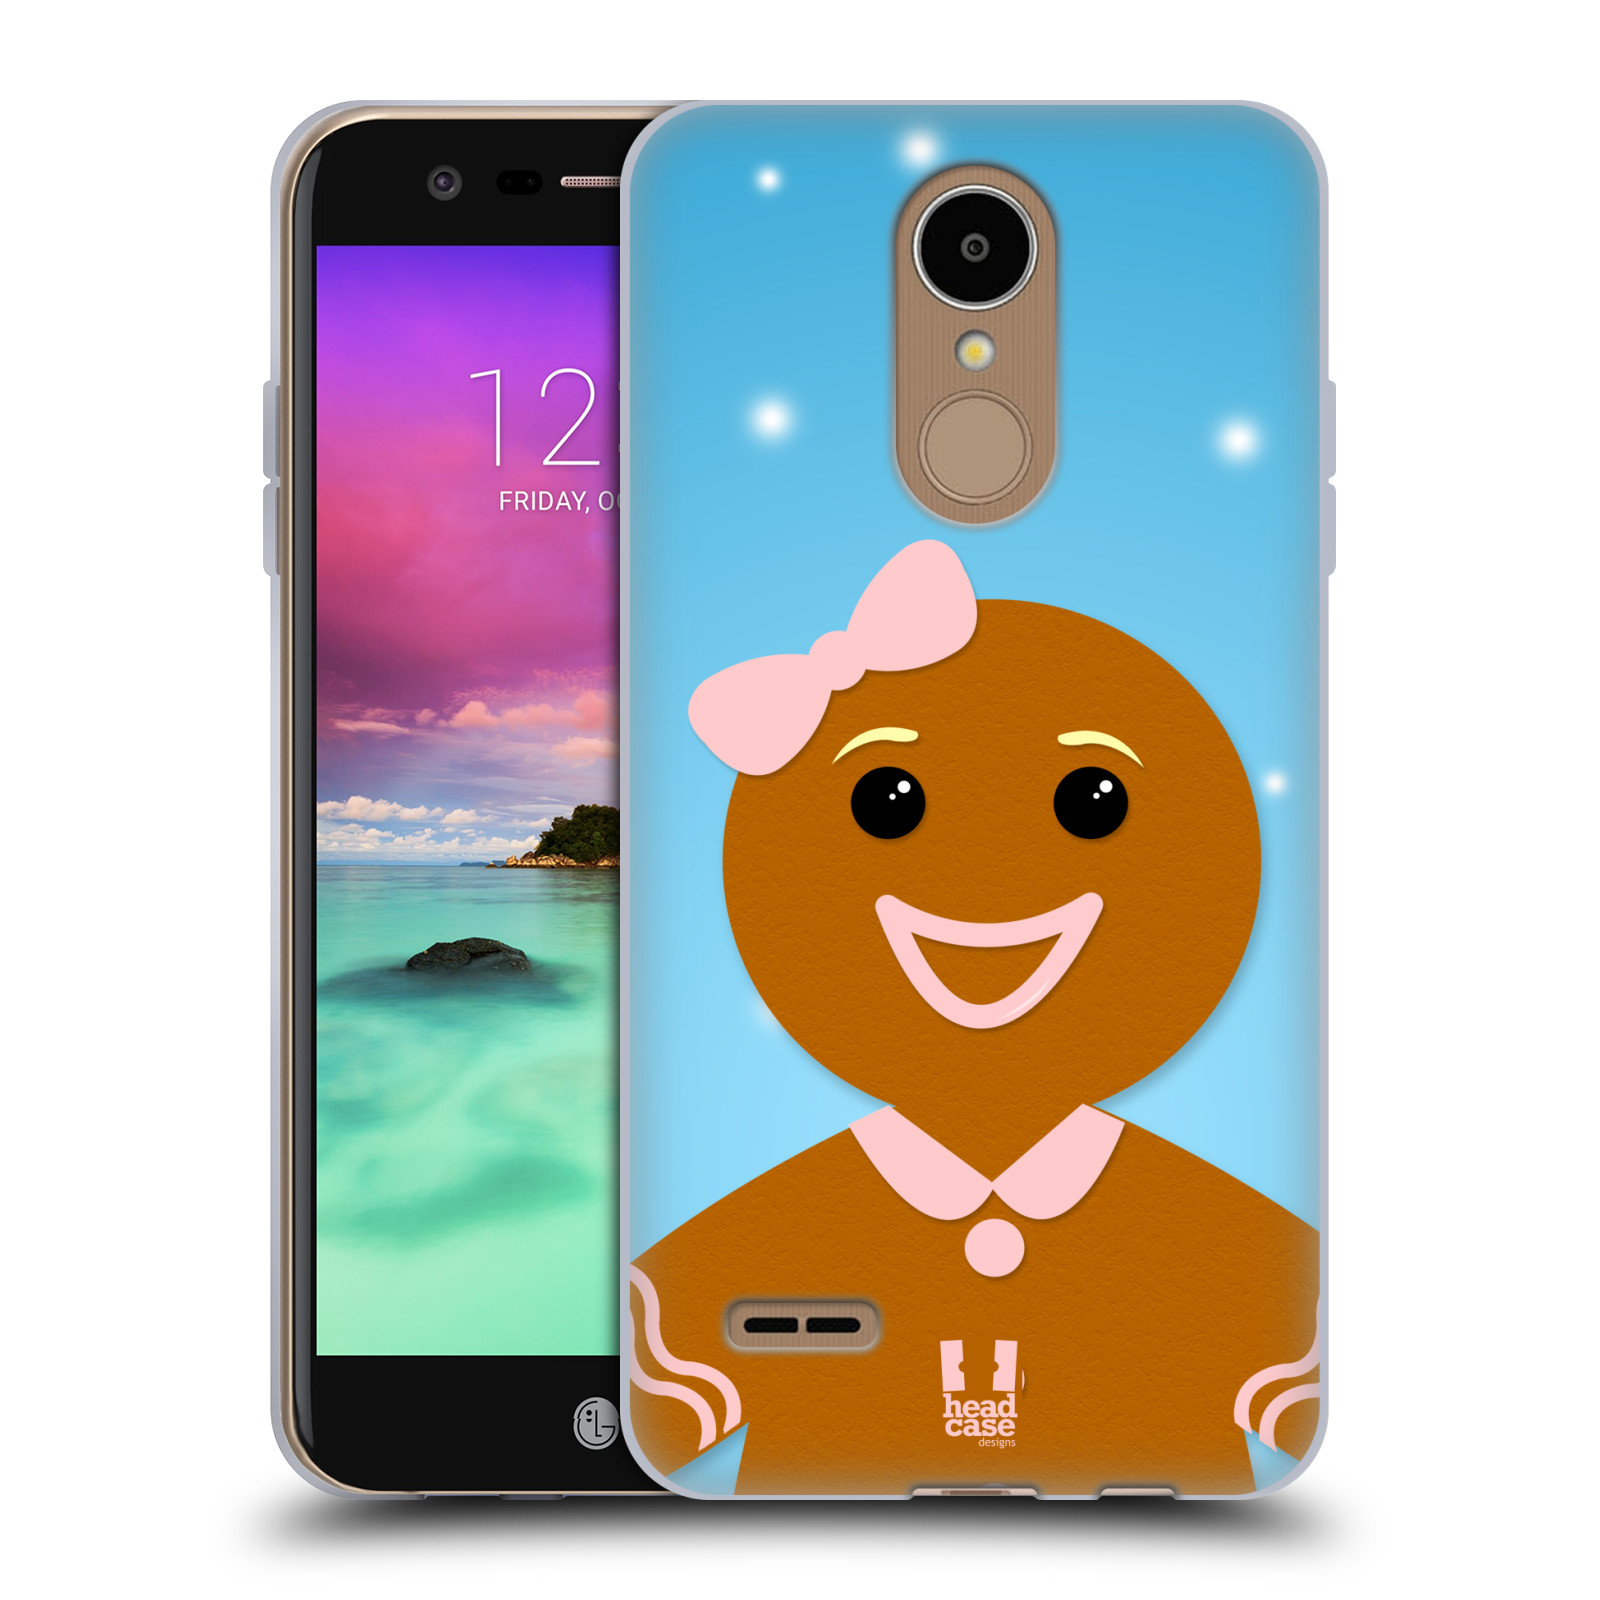 HEAD-CASE-DESIGNS-JOLLY-CHRISTMAS-CHARACTERS-SOFT-GEL-CASE-FOR-LG-K8-2017